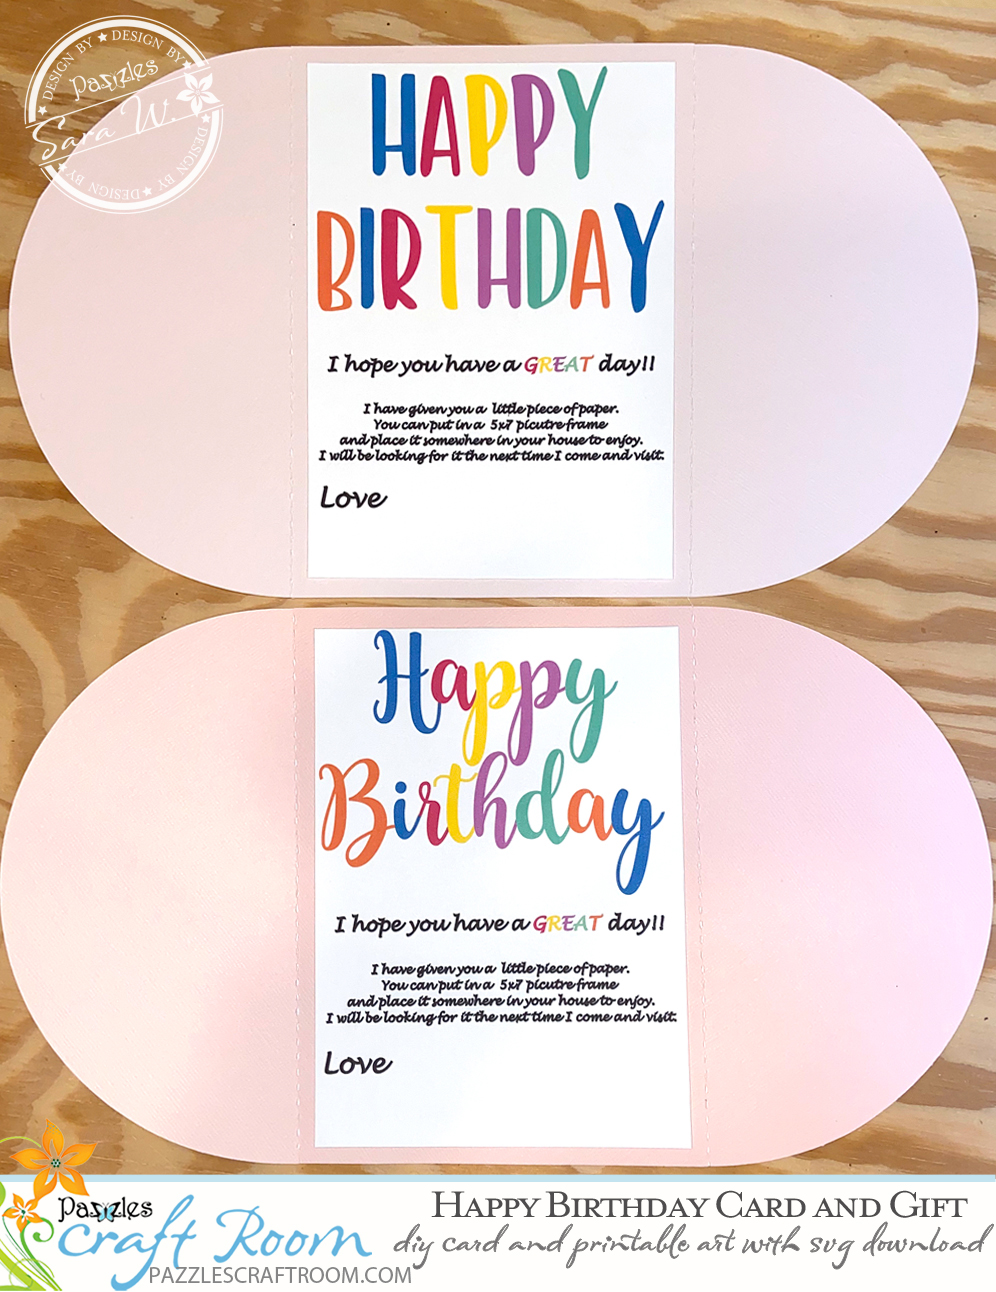 Pazzles DIY Trifold Birthday Card and Gift with instant SVG download. Compatible with all major electronic cutters including Pazzles Inspiration, Cricut, and Silhouette Cameo. Design by Sara Weber.